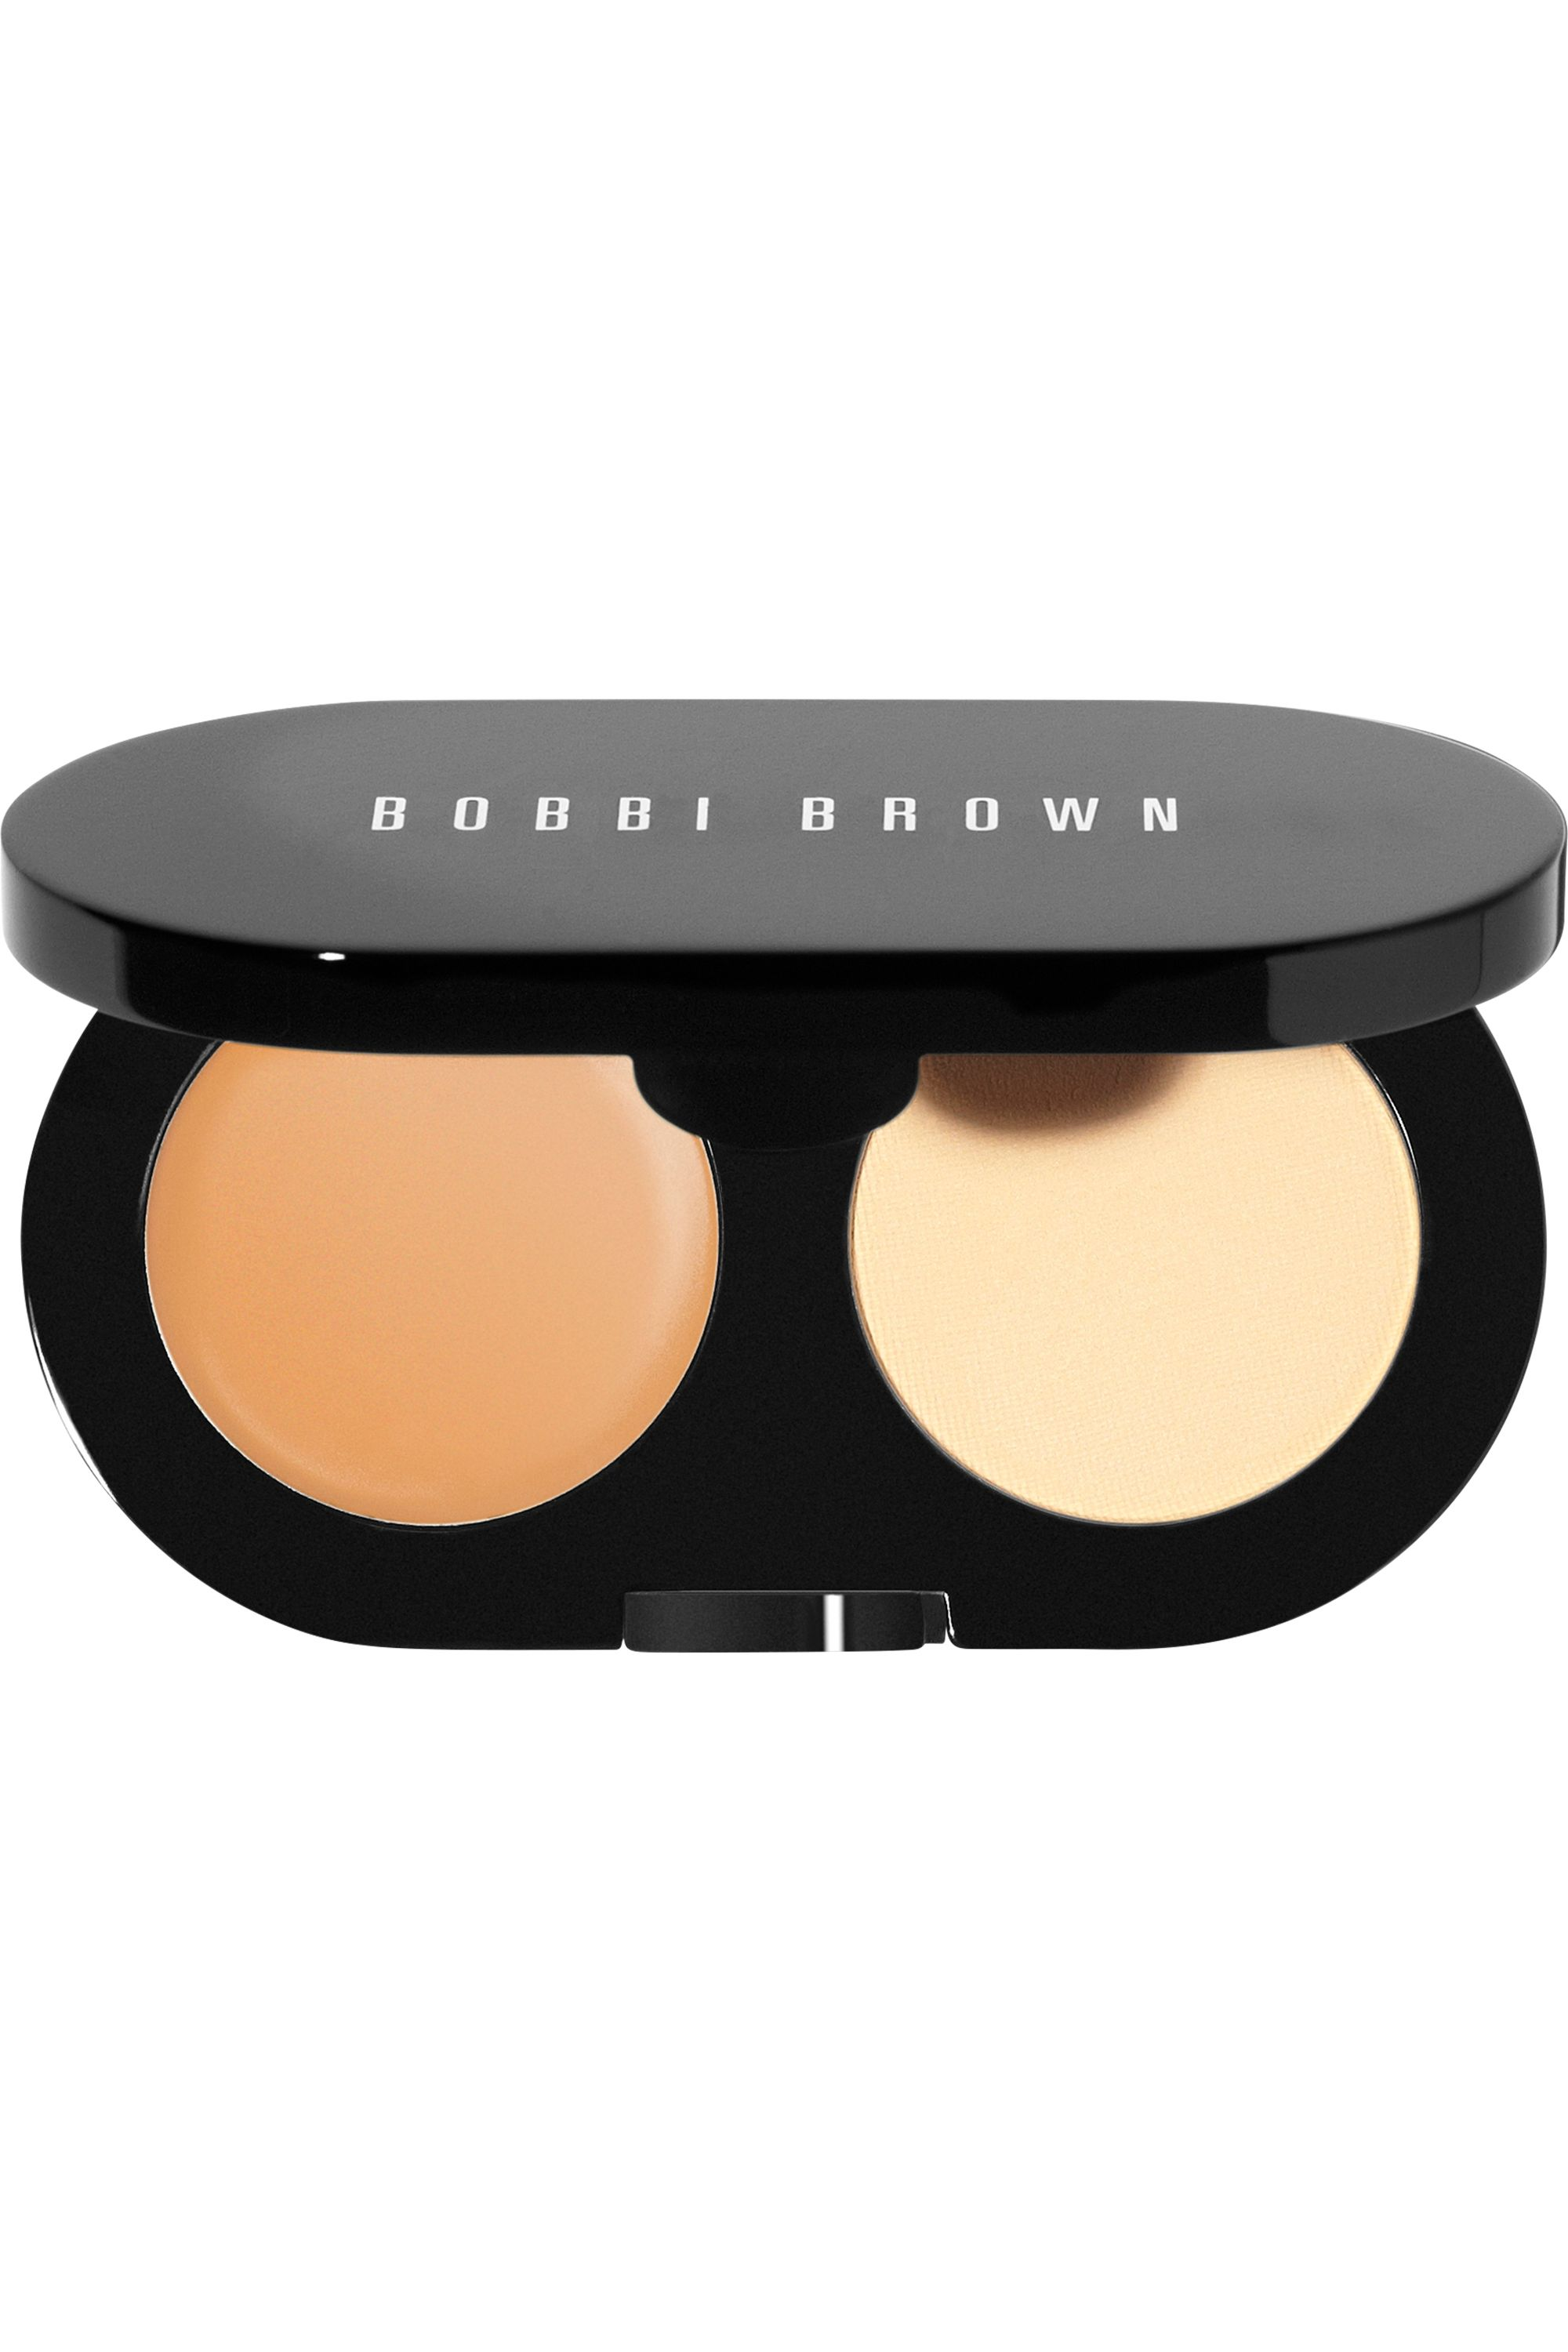 Blissim : Bobbi Brown - Kit anti-cernes Creamy Concealer Kit - Natural